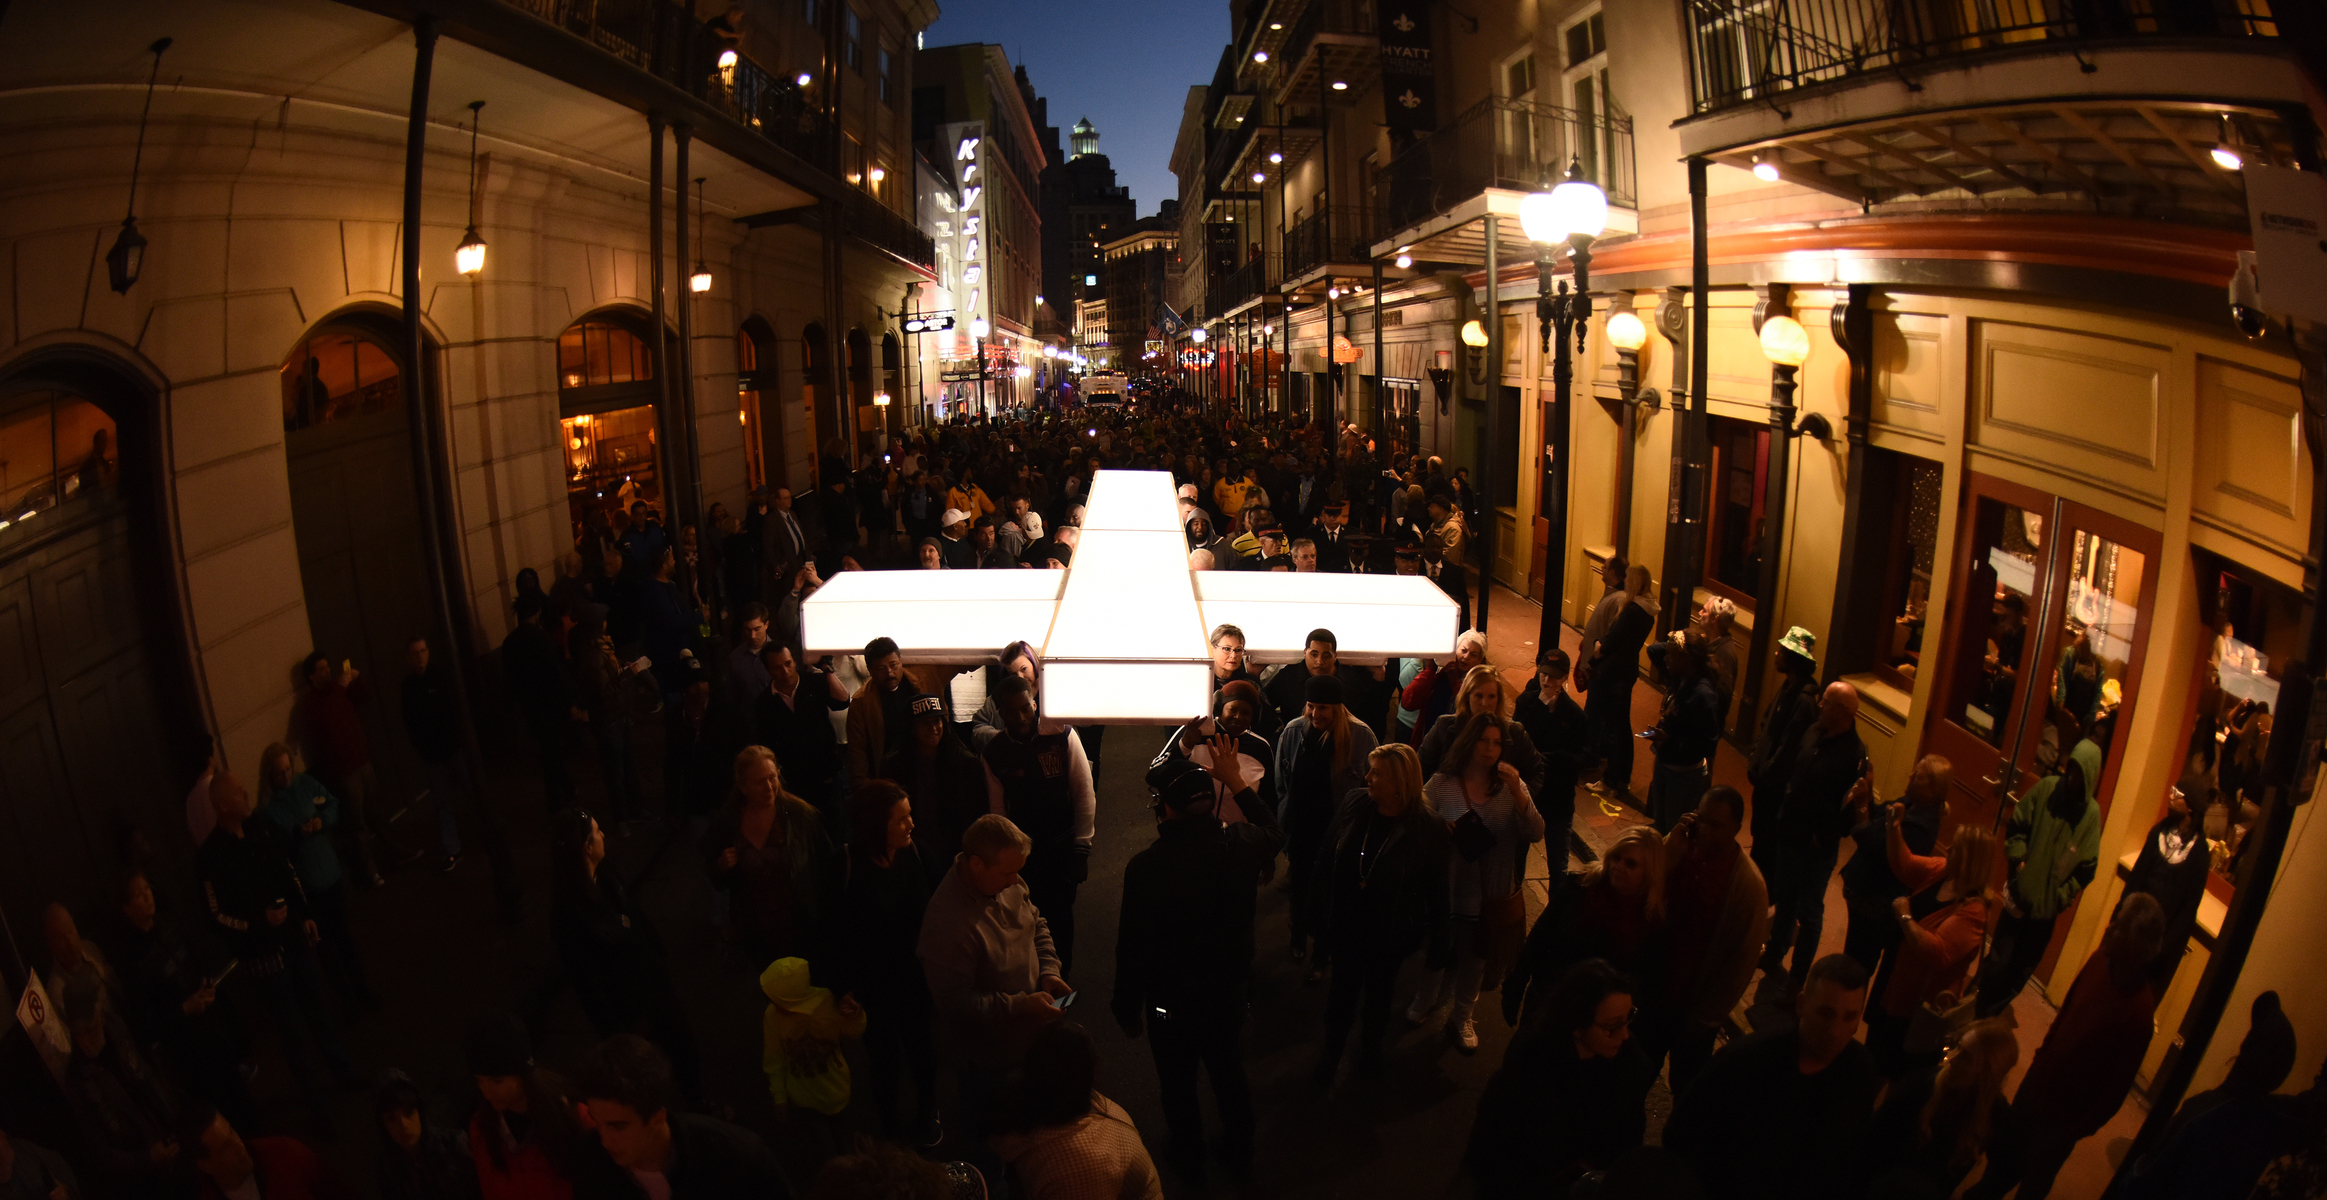 The cross being carried through the streets of New Orleans in  The Passion , a two-hour epic musical Live event from New Orleans on Palm Sunday, March 20, 2016.